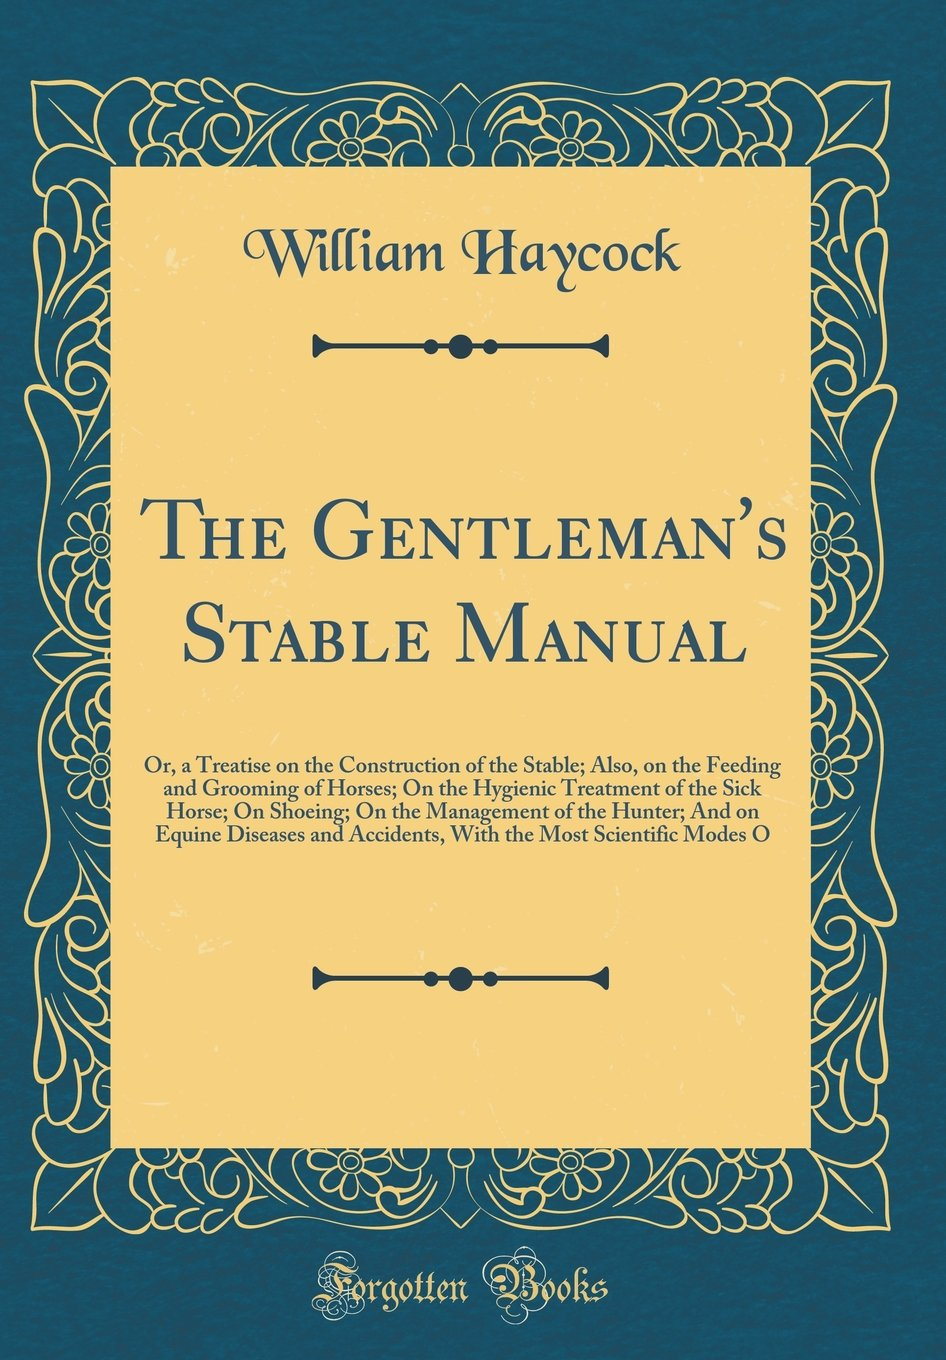 Download The Gentleman's Stable Manual: Or, a Treatise on the Construction of the Stable; Also, on the Feeding and Grooming of Horses; On the Hygienic ... And on Equine Diseases and Accidents, W pdf